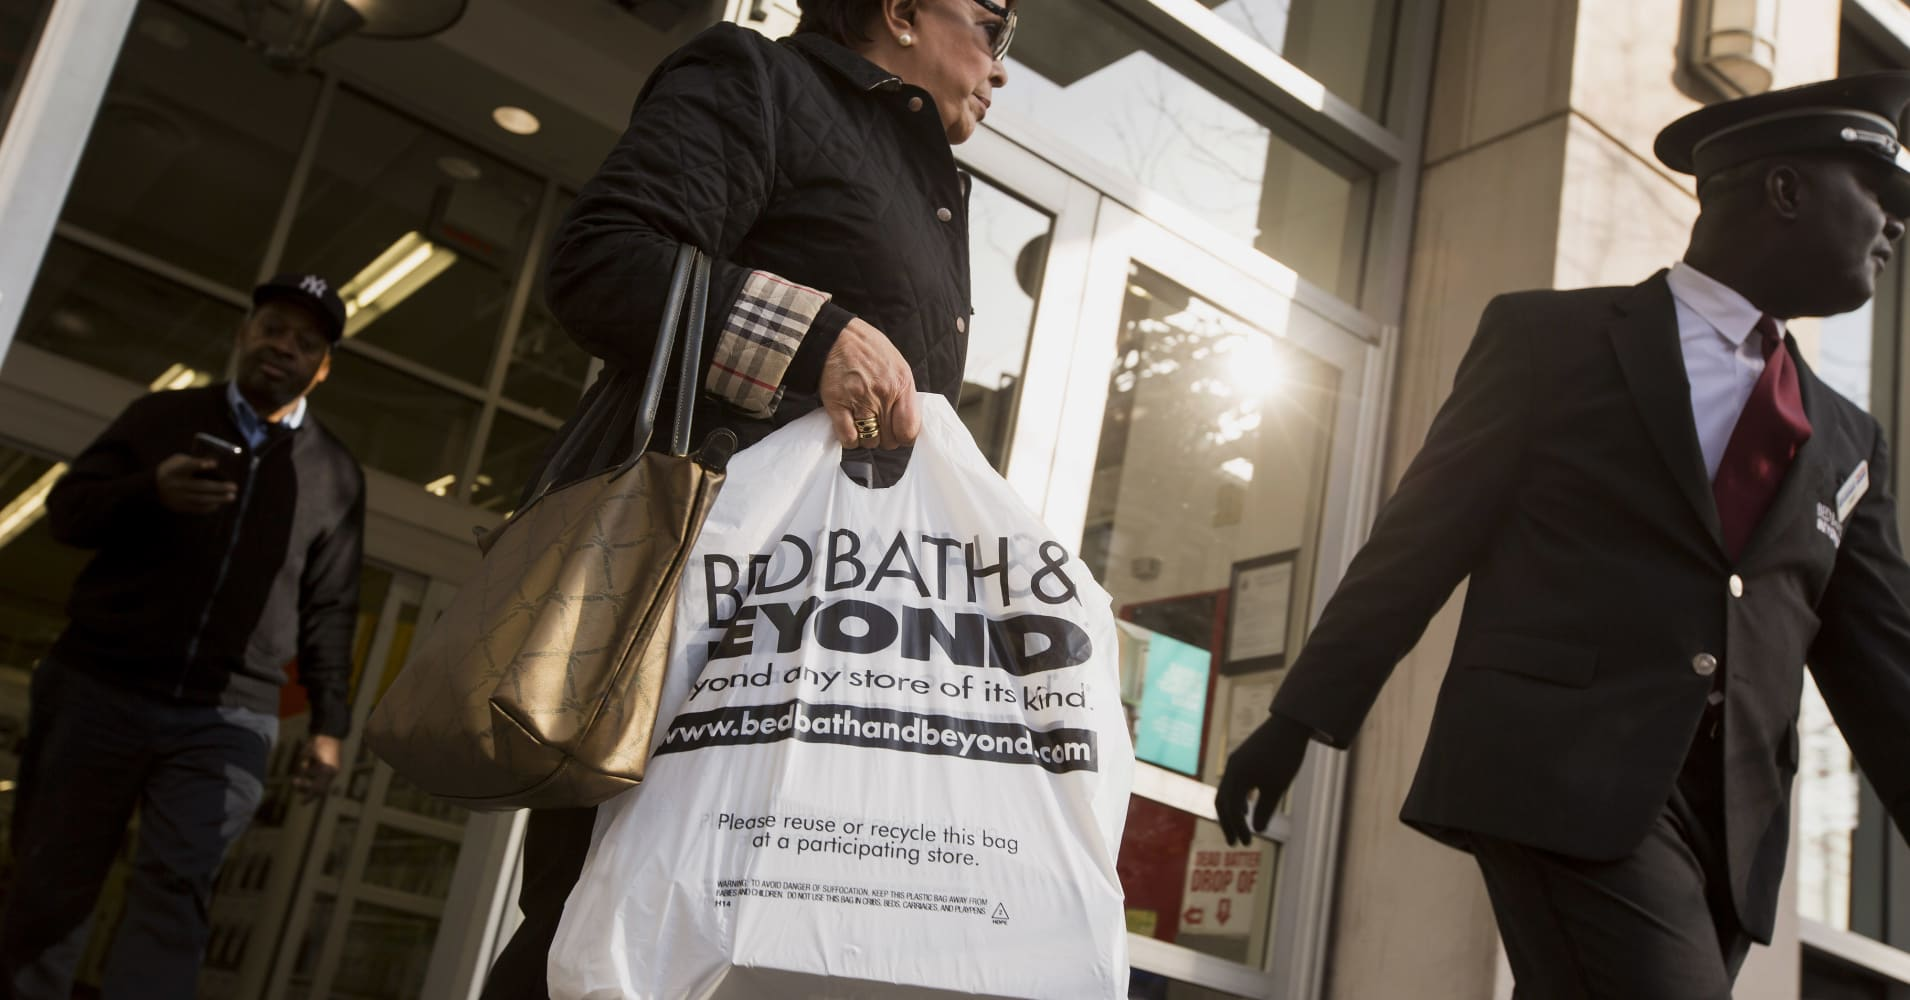 Why every US company has a stake in Bed Bath & Beyond's heated boardroom war